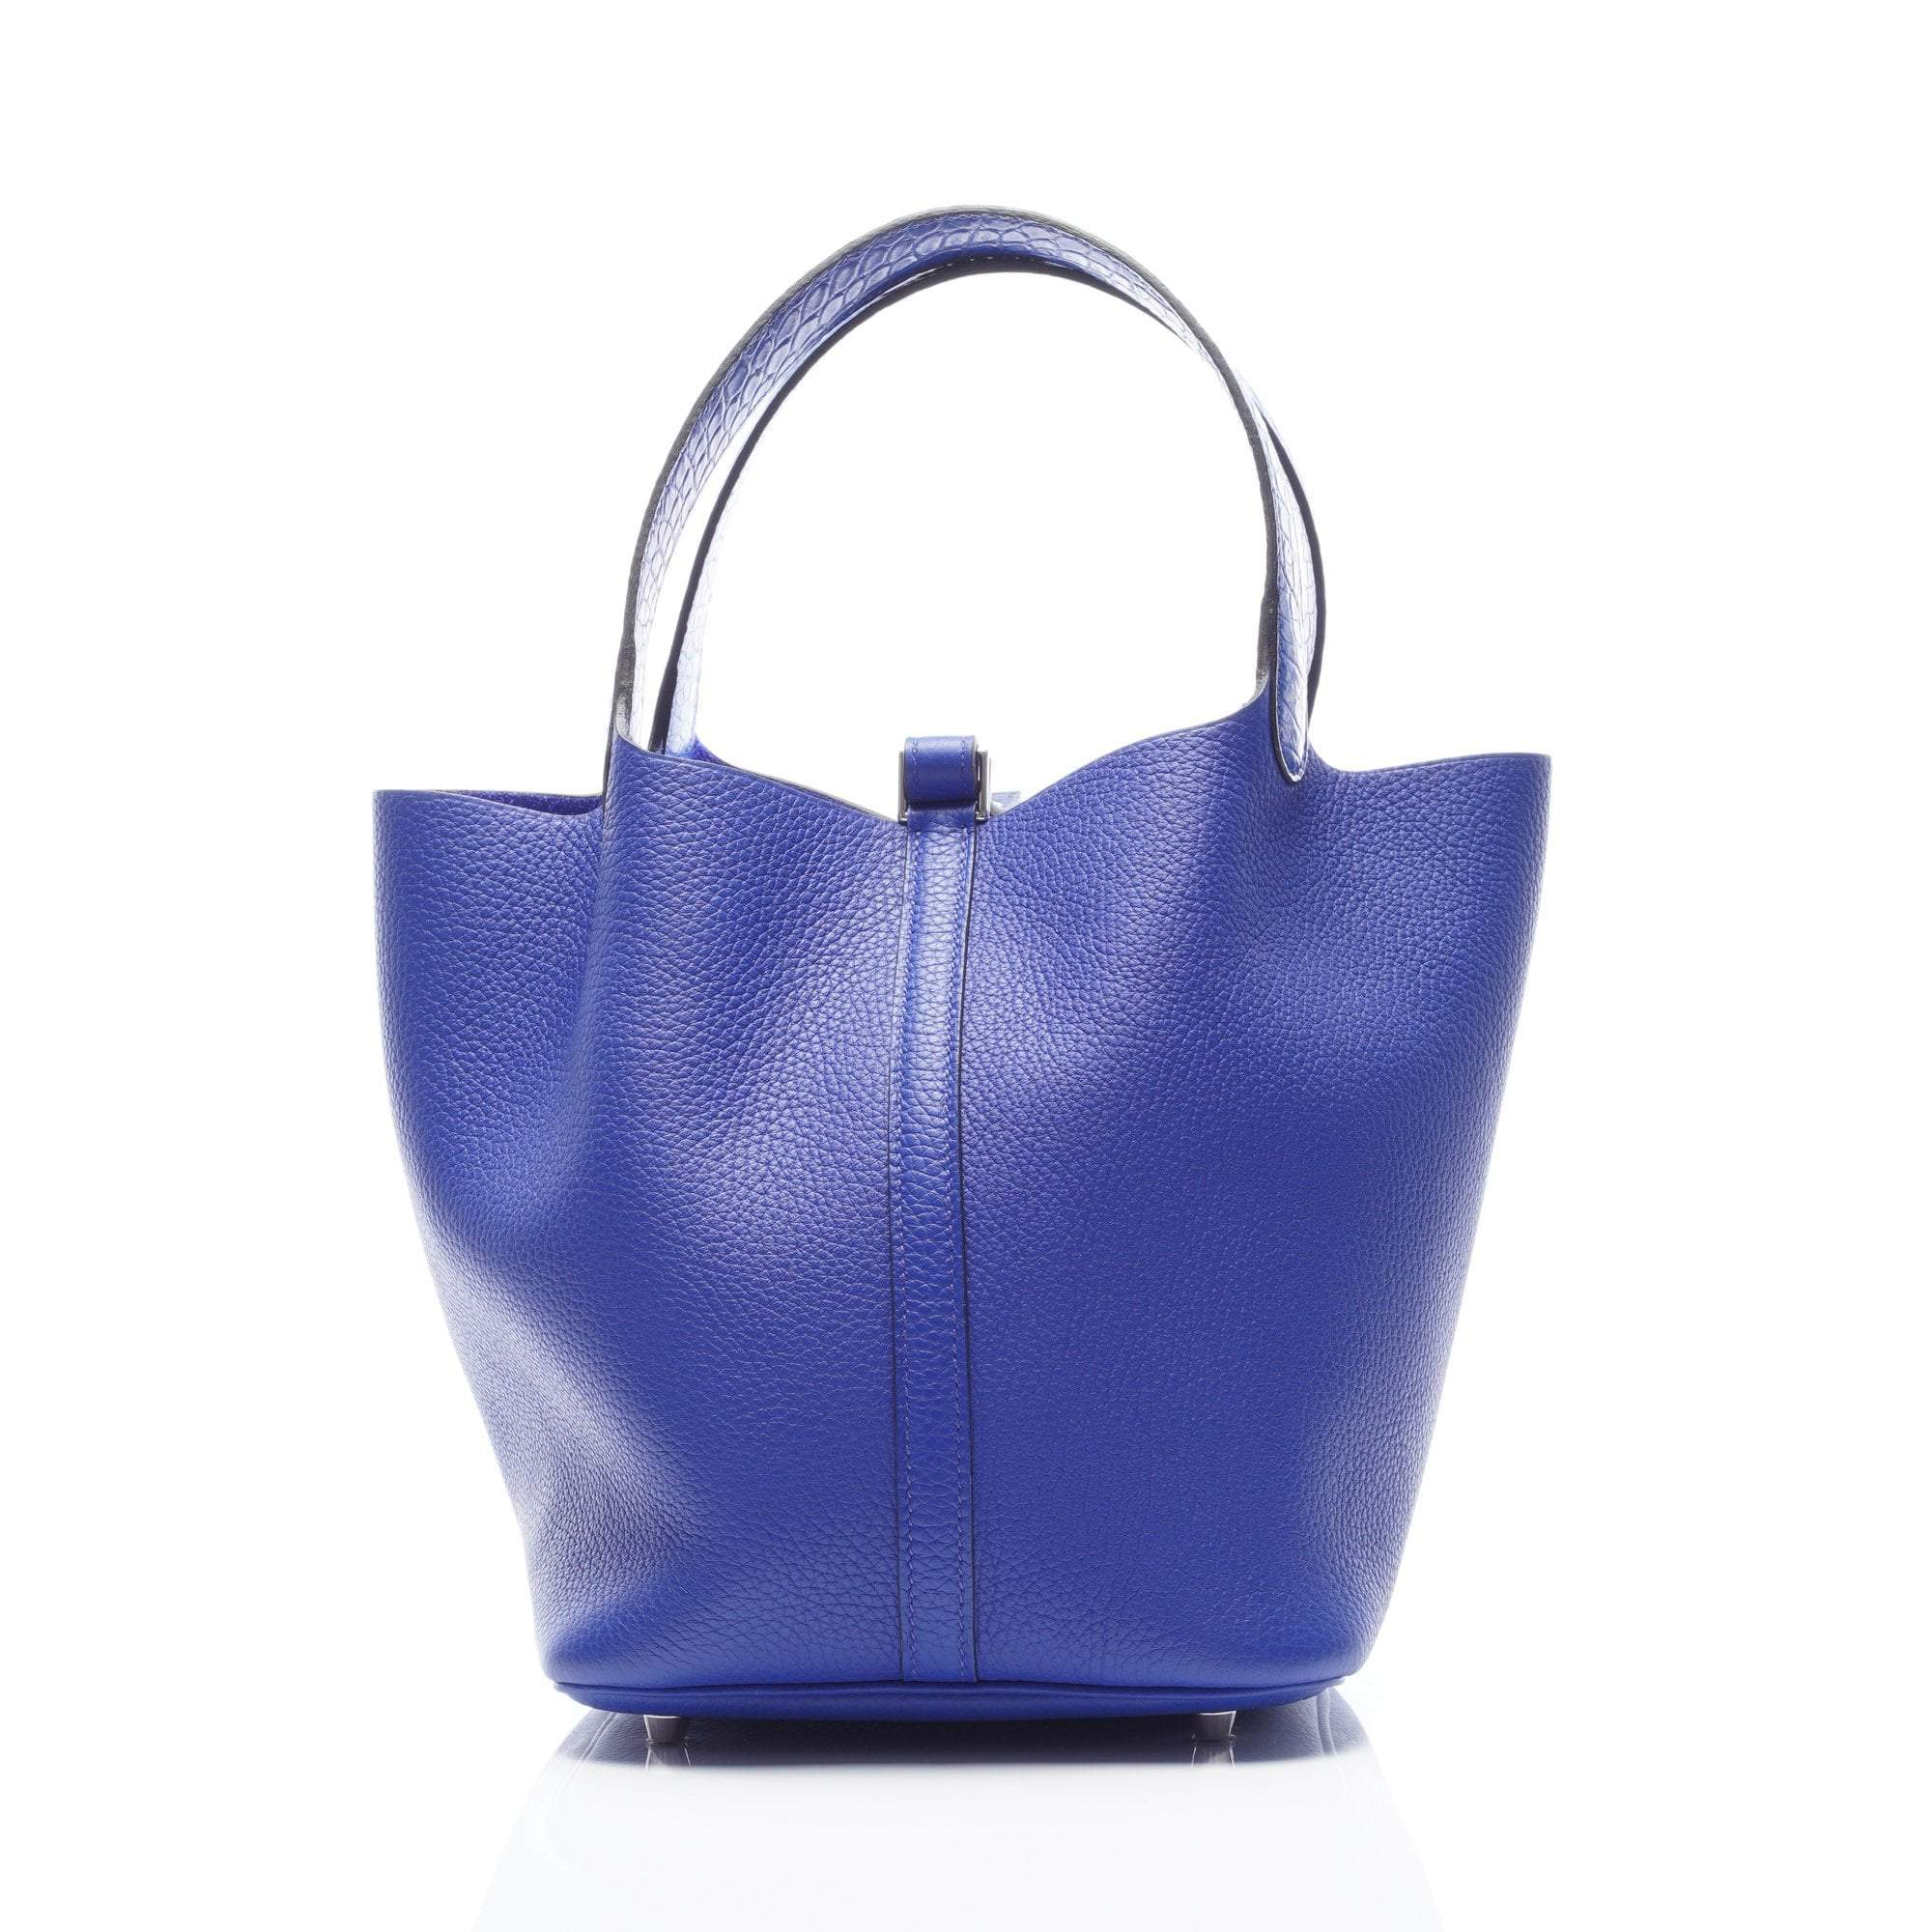 04df4ffcaaed1 ... cheap hermes picotin lock mm blue electric clemence leather matt  alligator bag 700c3 d05dc